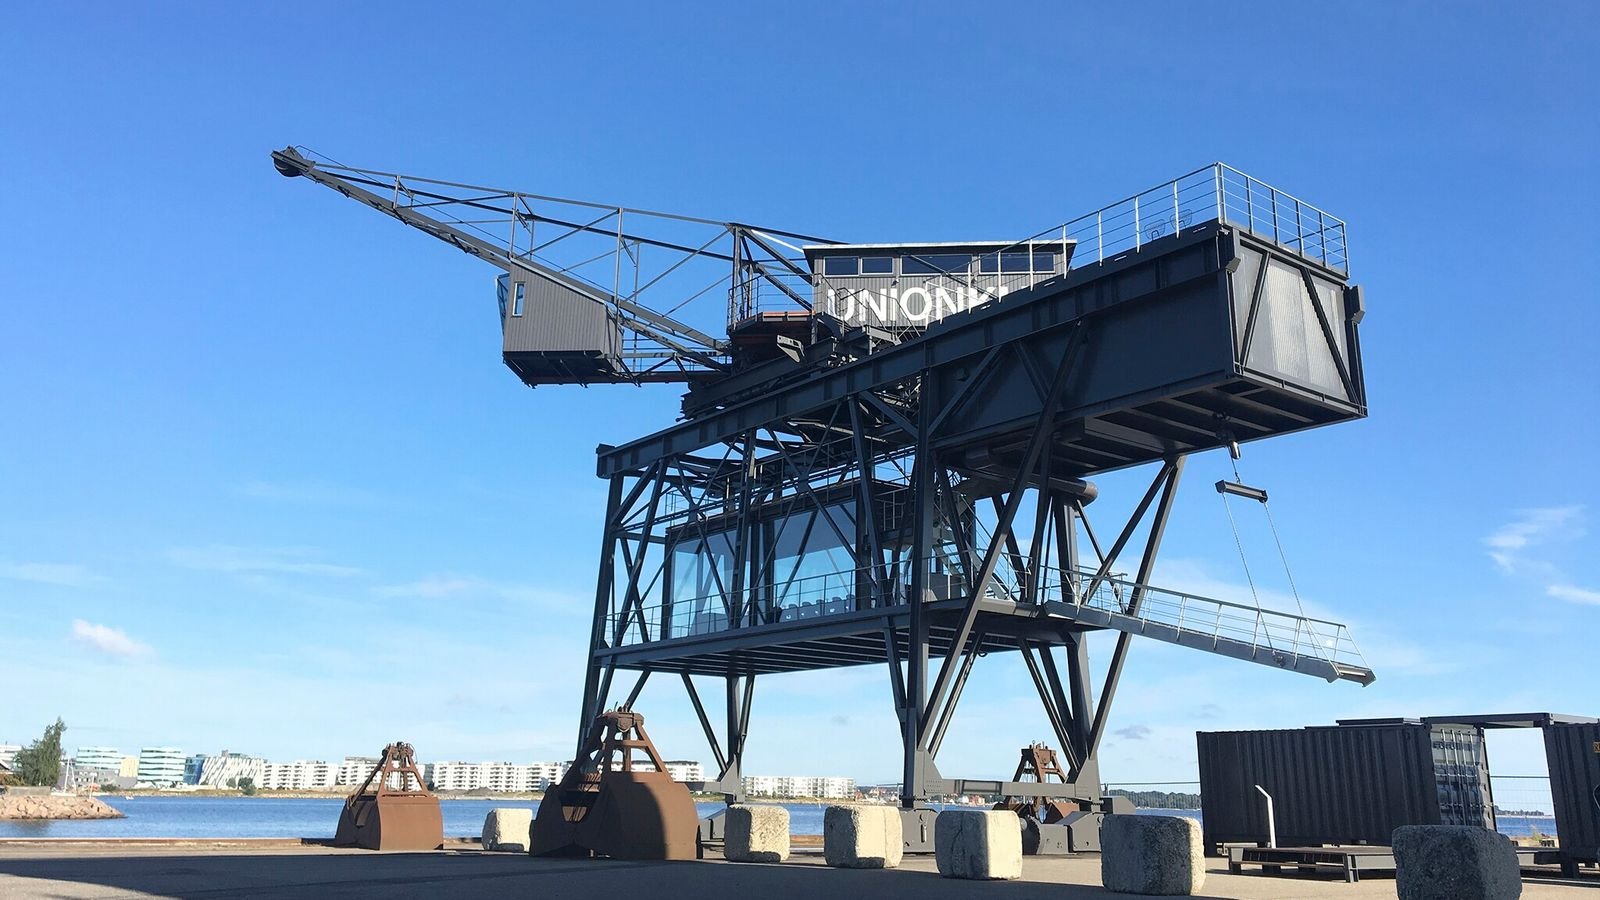 In Copenhagen, you can now check into the engine room of an industrial crane.